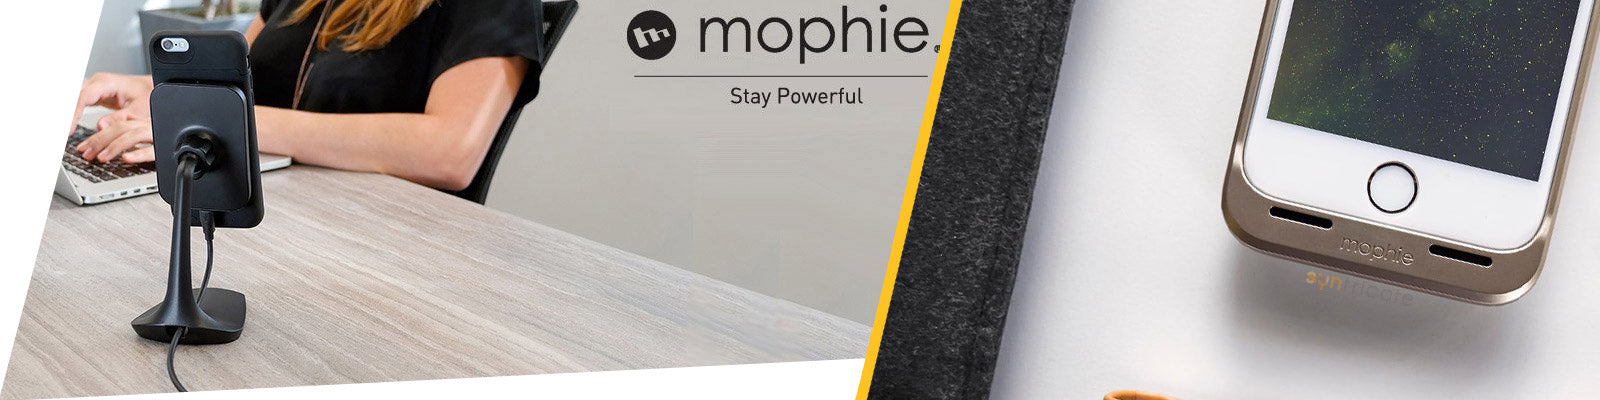 Browse Mophie collections from power cases, stand for iphone, samsung and more with 100 days return policy